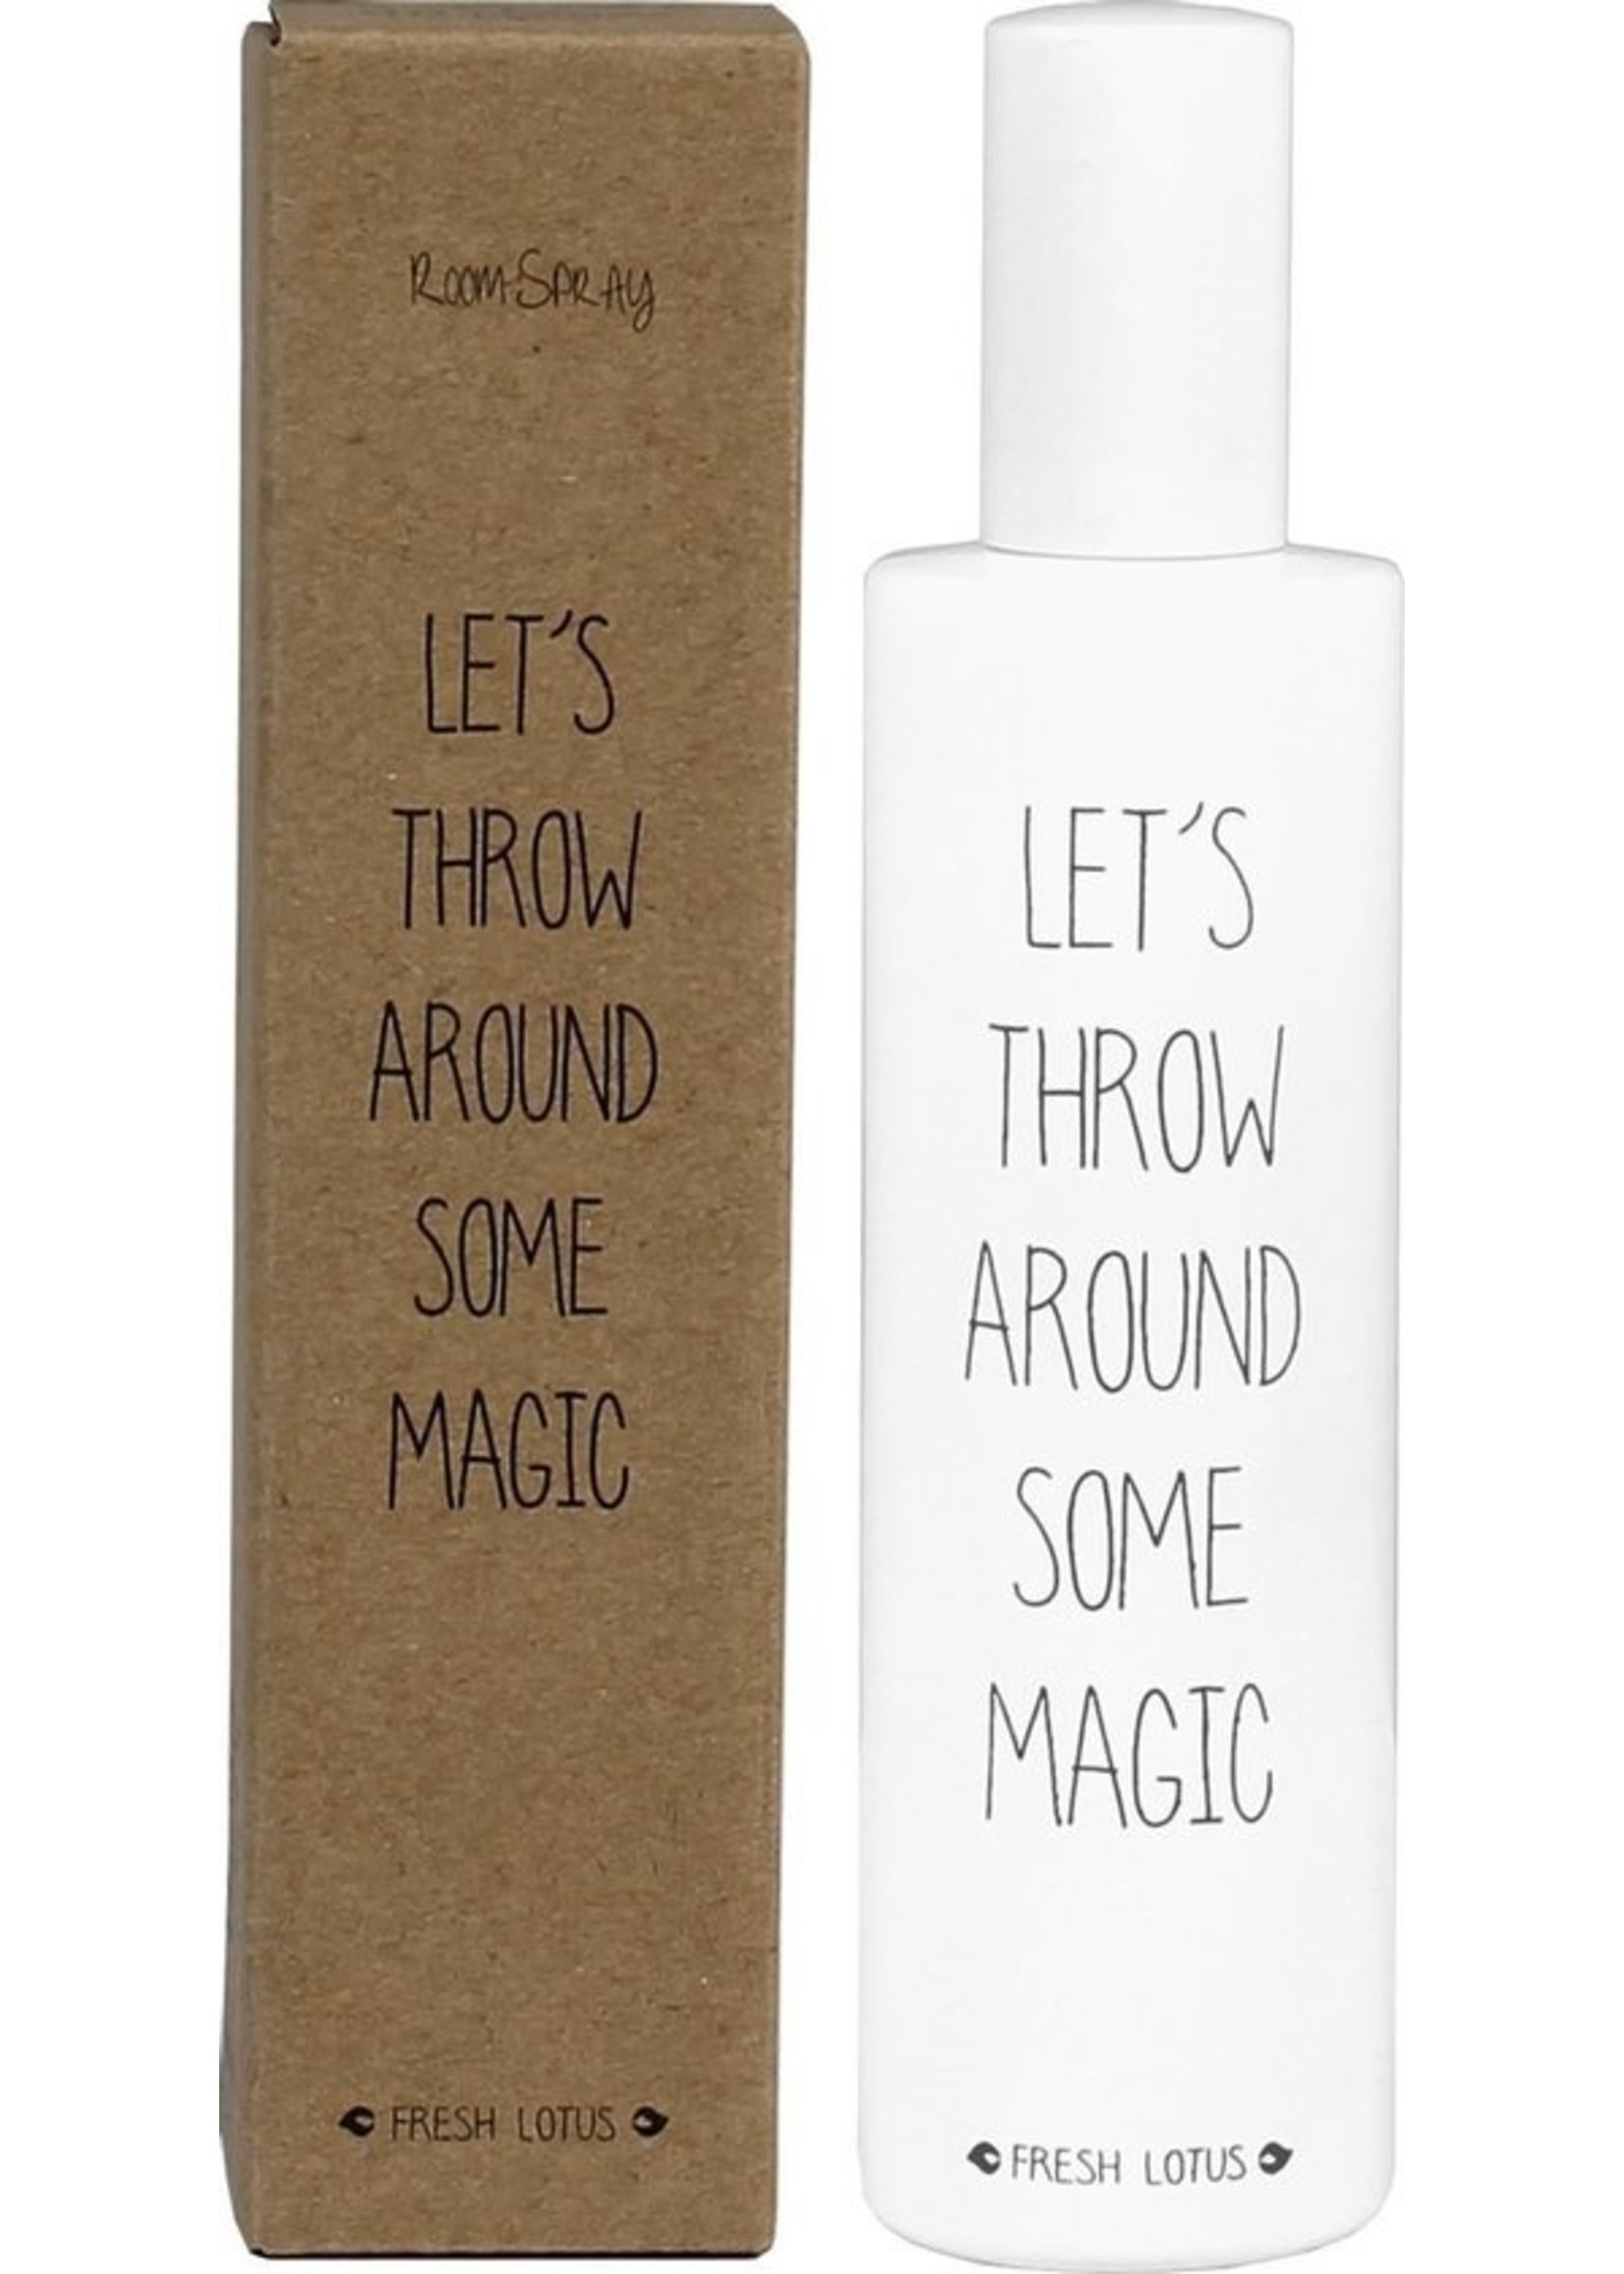 My Flame Room spray Let's throw around some magic